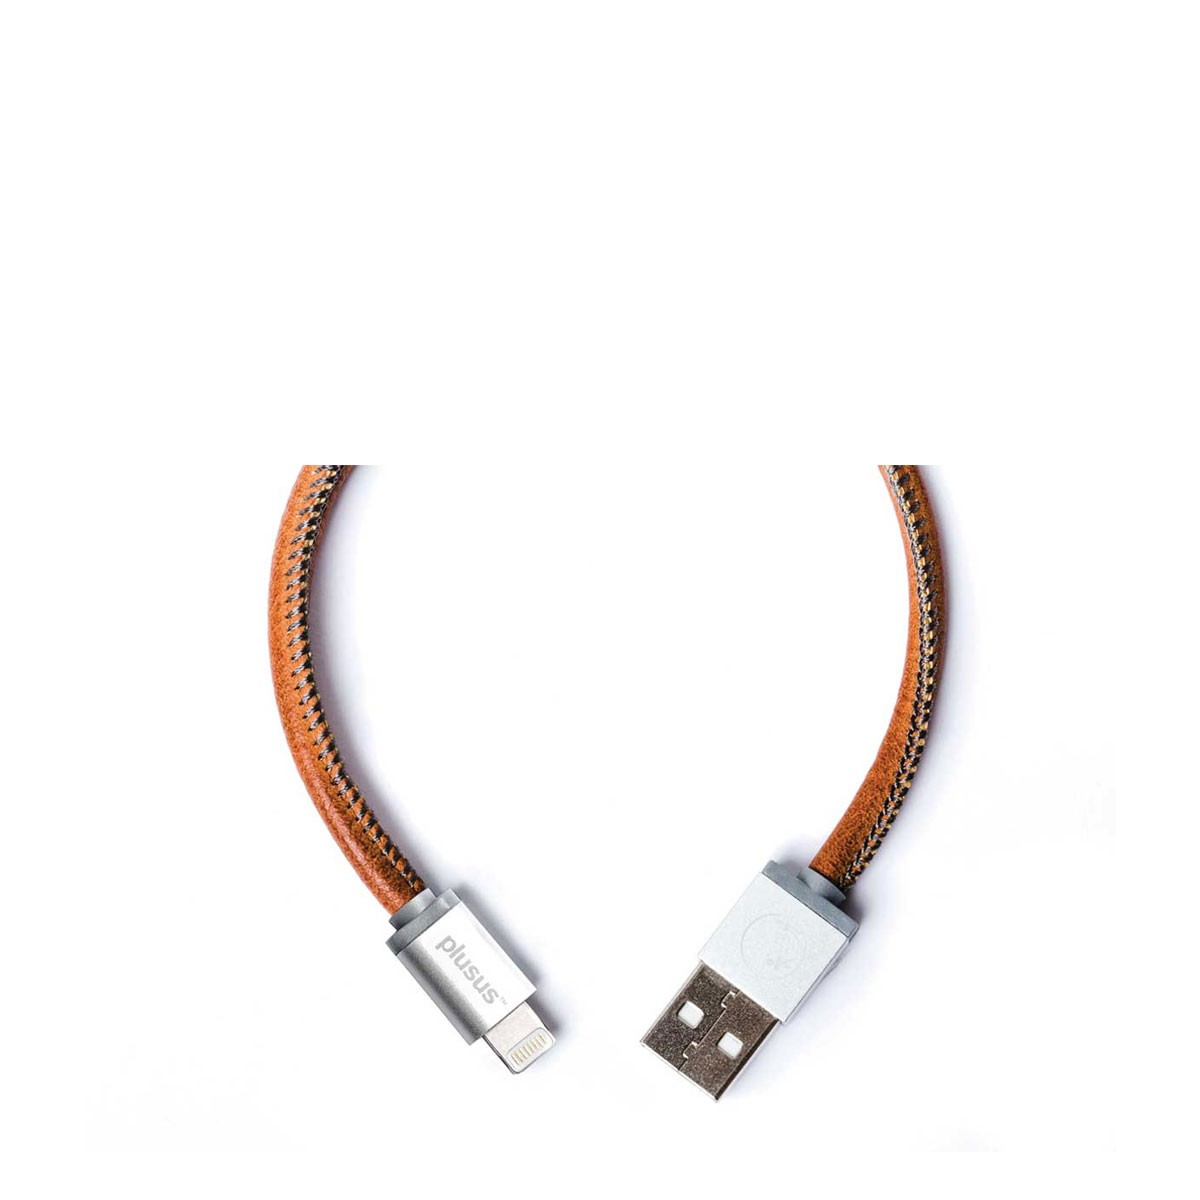 PlusUs LifeStar Handcrafted USB Charge & Sync cable (25cm) Lightning - Brown / Grey